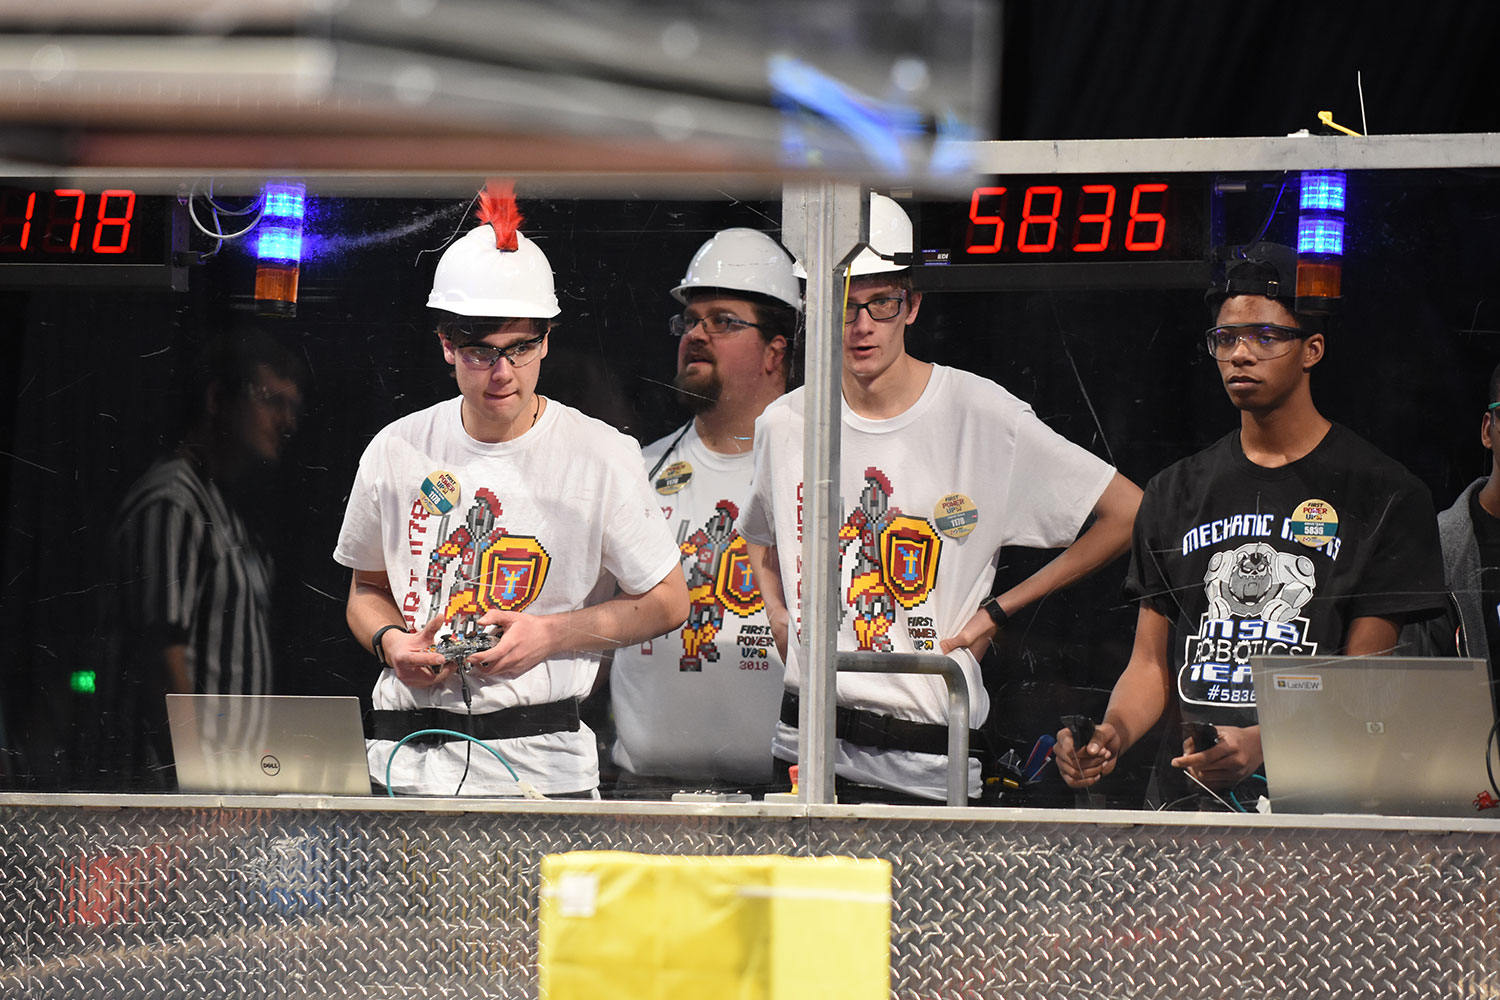 senior Jacob Deighton controls his robot as the rest of the team looks on.